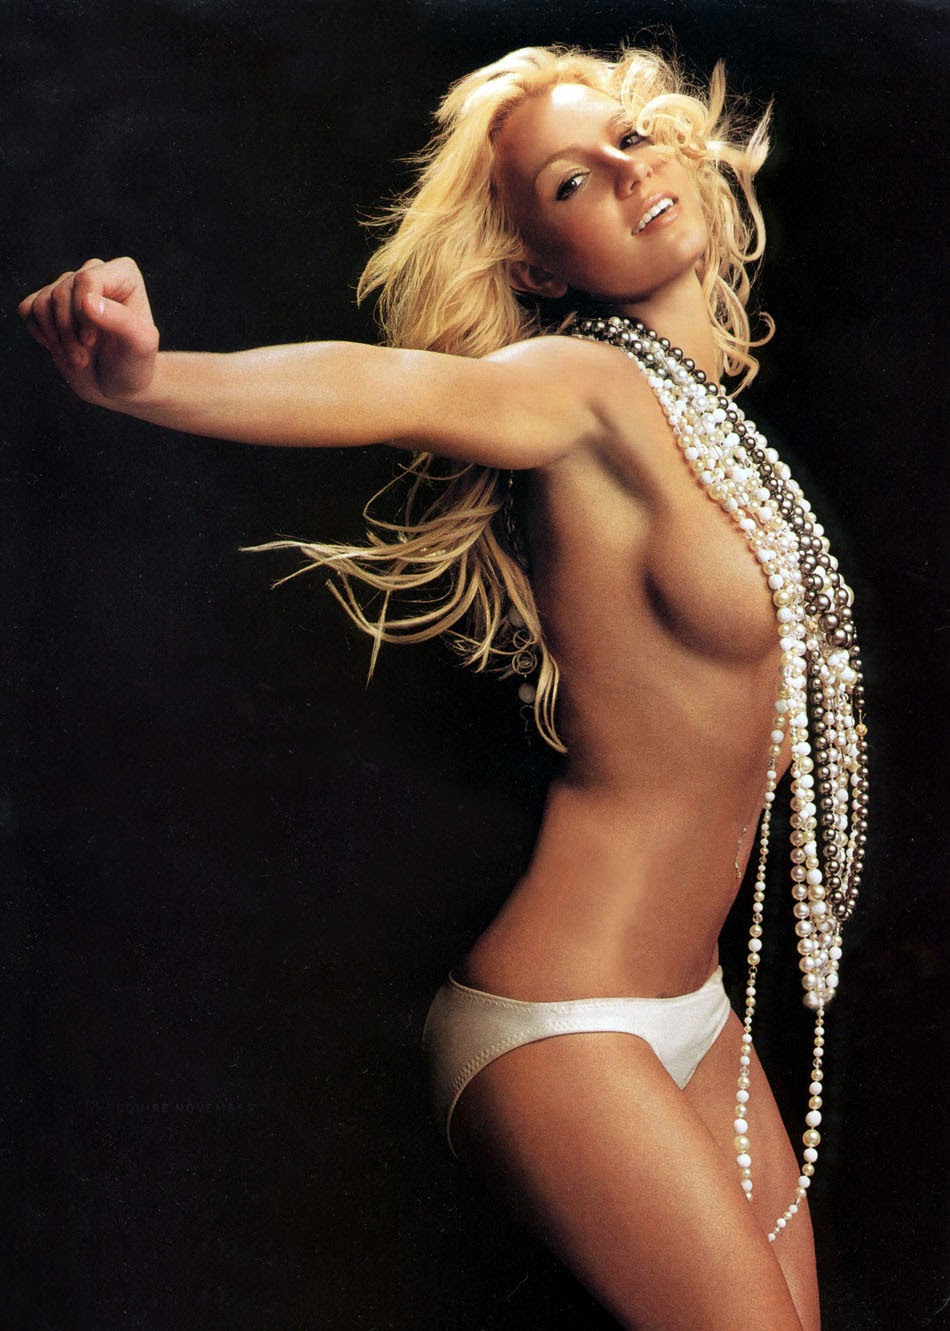 Britney Spears hot pics images photos